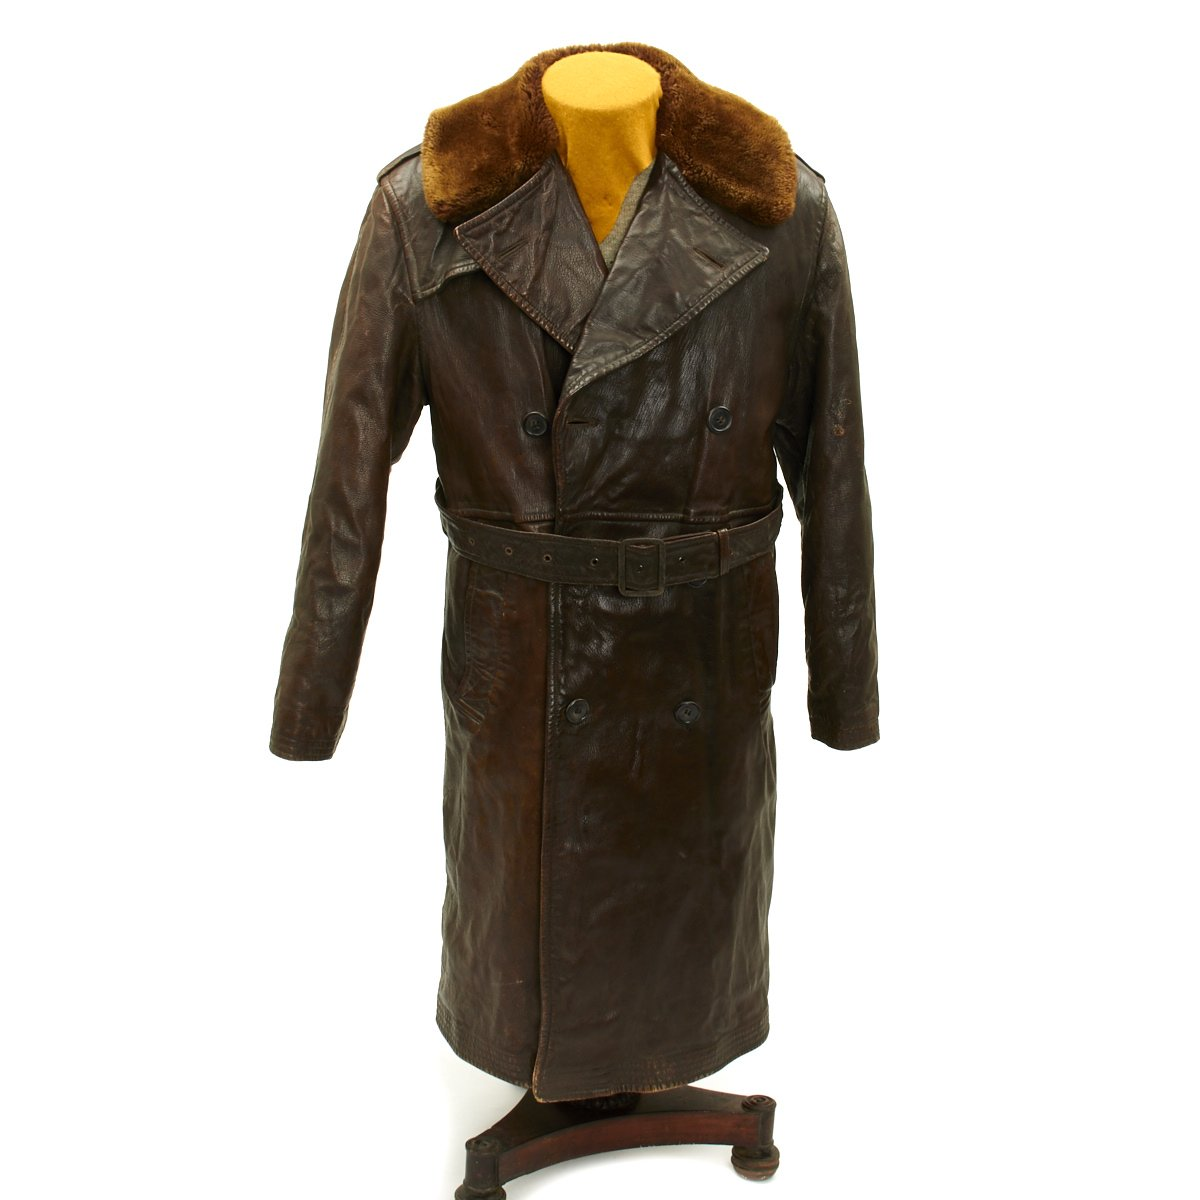 d3605b150 Original WWII U.S. Navy M-69F Leather Transport Pilot Aircraft Coat ...